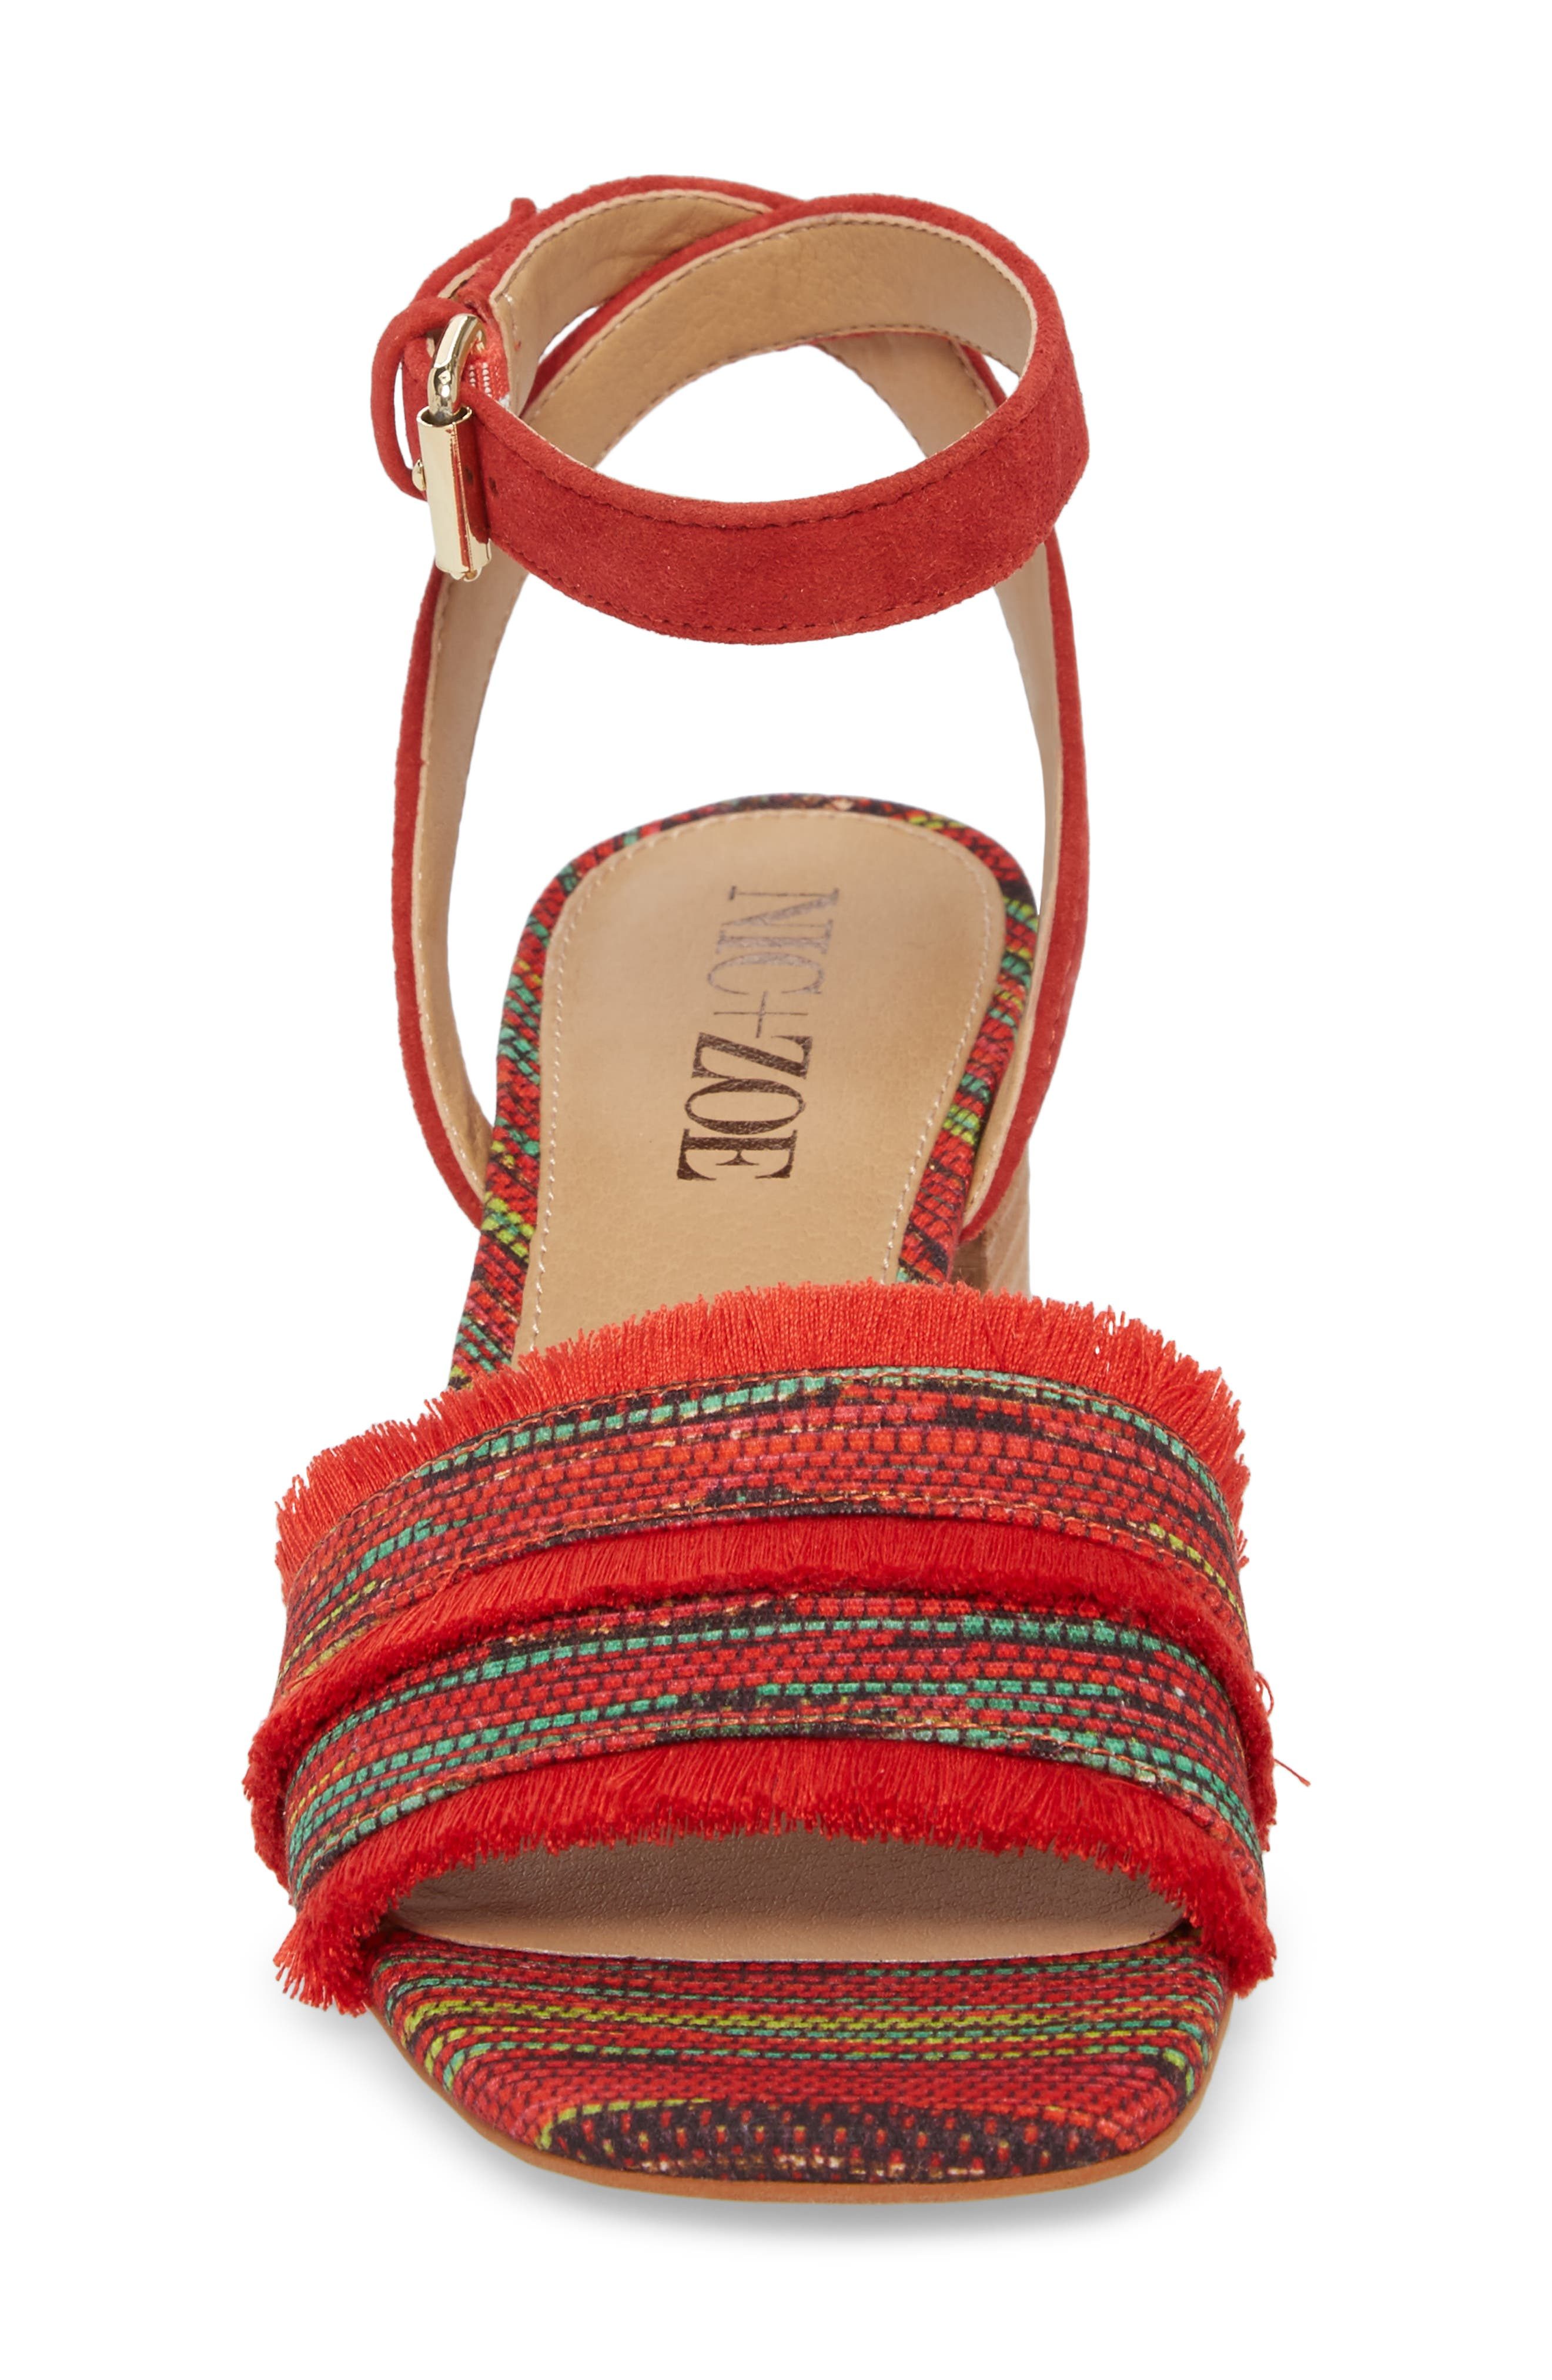 Zaria Fringed Sandal,                             Alternate thumbnail 4, color,                             Red Multi Fabric